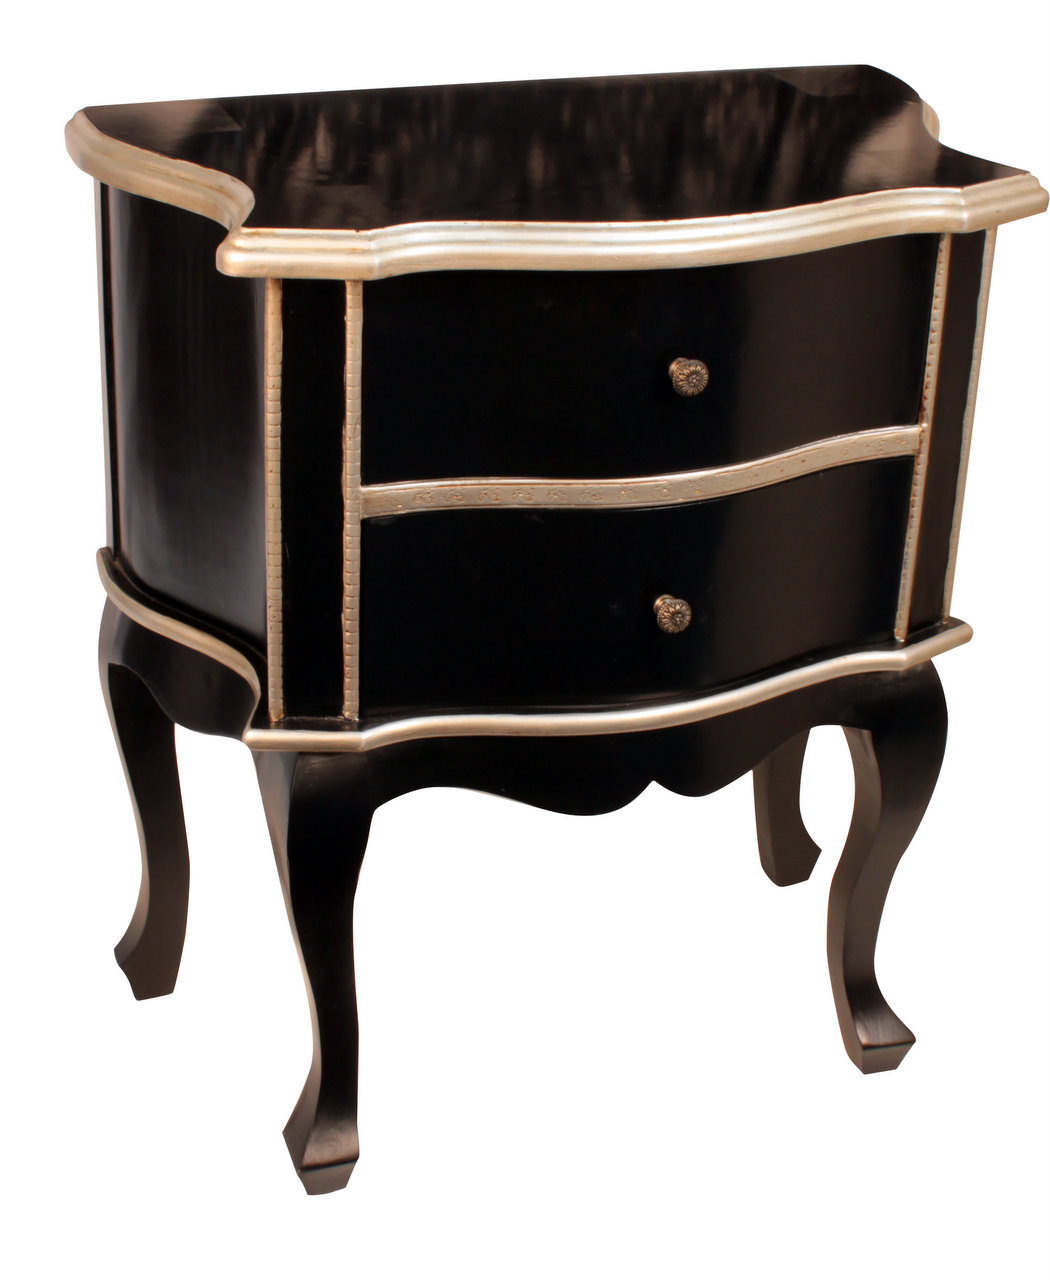 Black side table with drawer - Black Wooden Two Drawer Side Table With Silver Champagne Trim Forever Furnishings Fine Home And Garden Furnishings